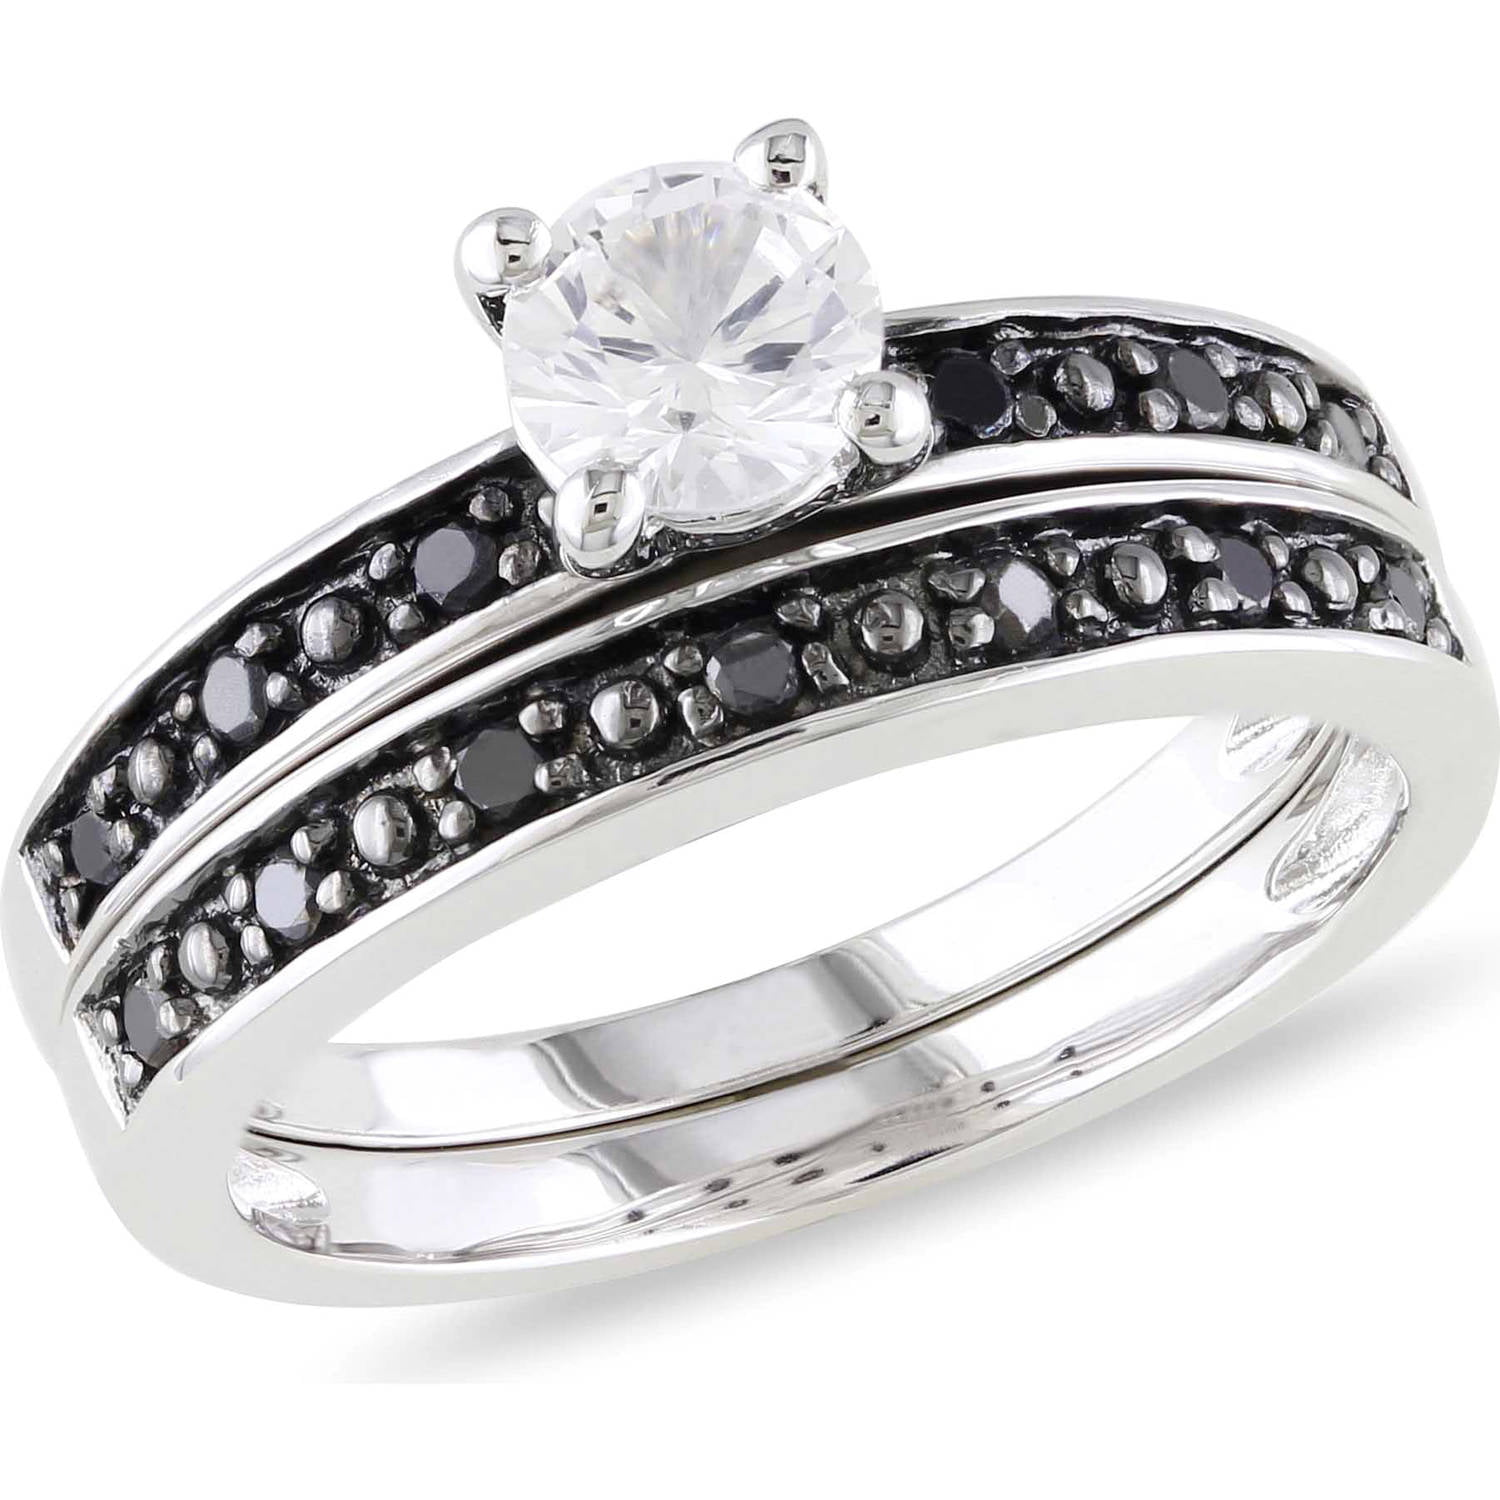 Asteria 5 8 Carat T.G.W. Created White Sapphire and 1 5 Carat T.W. Black Diamond Sterling Silver Bridal Set by